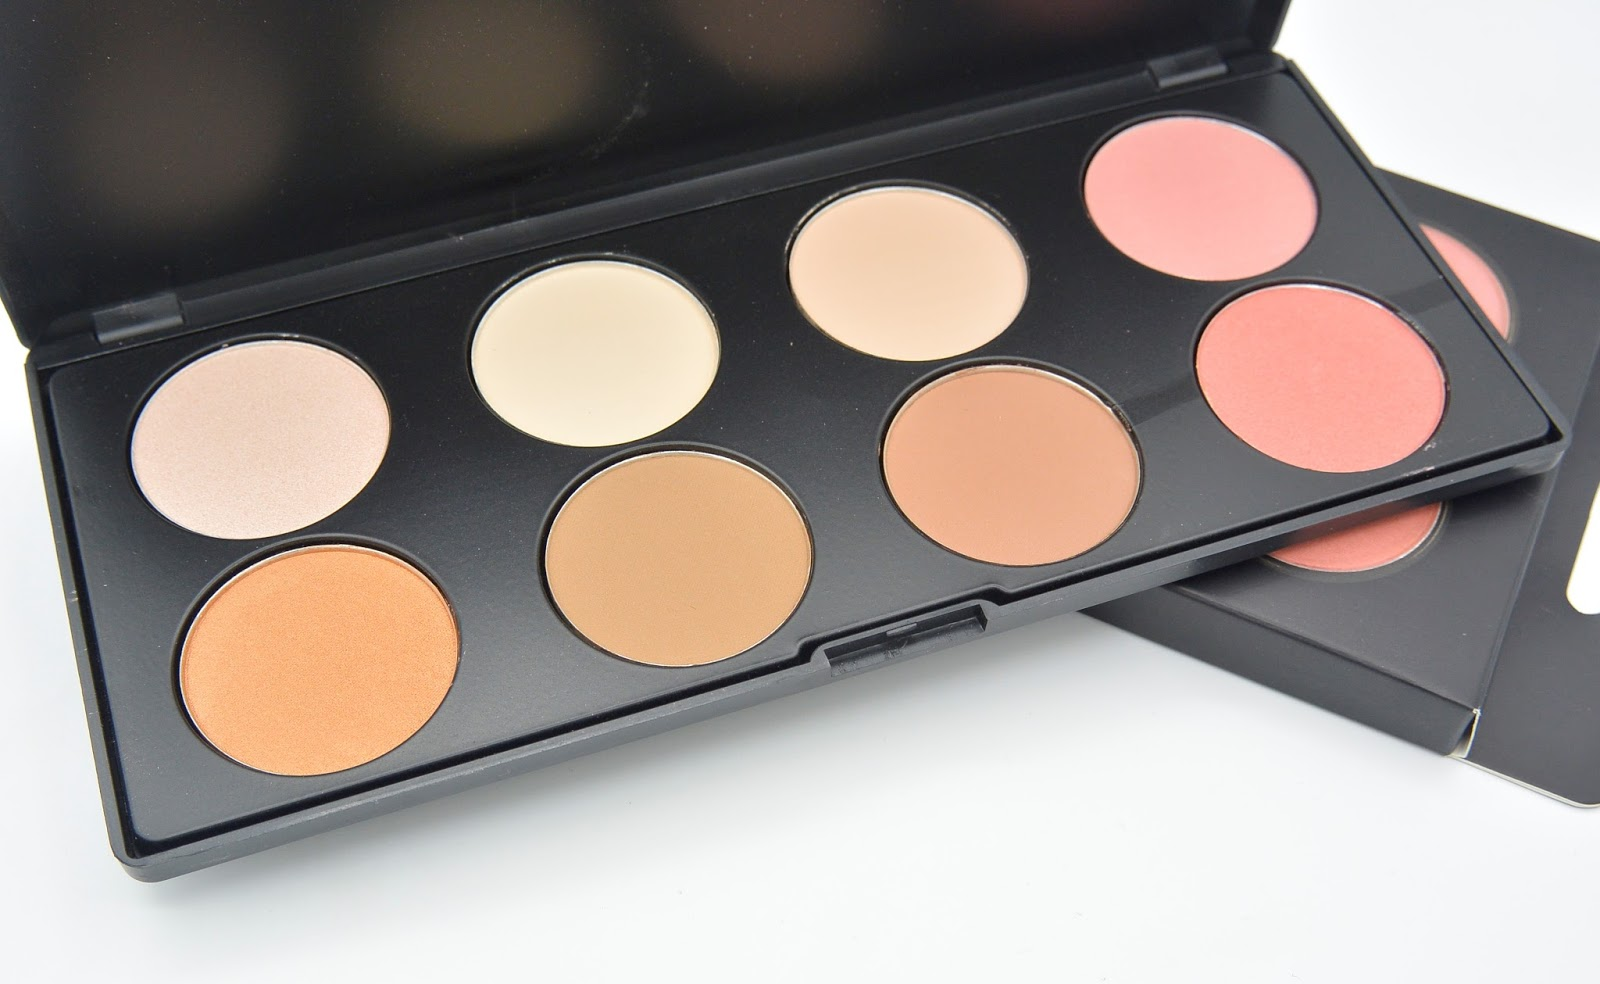 max more highlight foundation contour blush palette action review. Black Bedroom Furniture Sets. Home Design Ideas